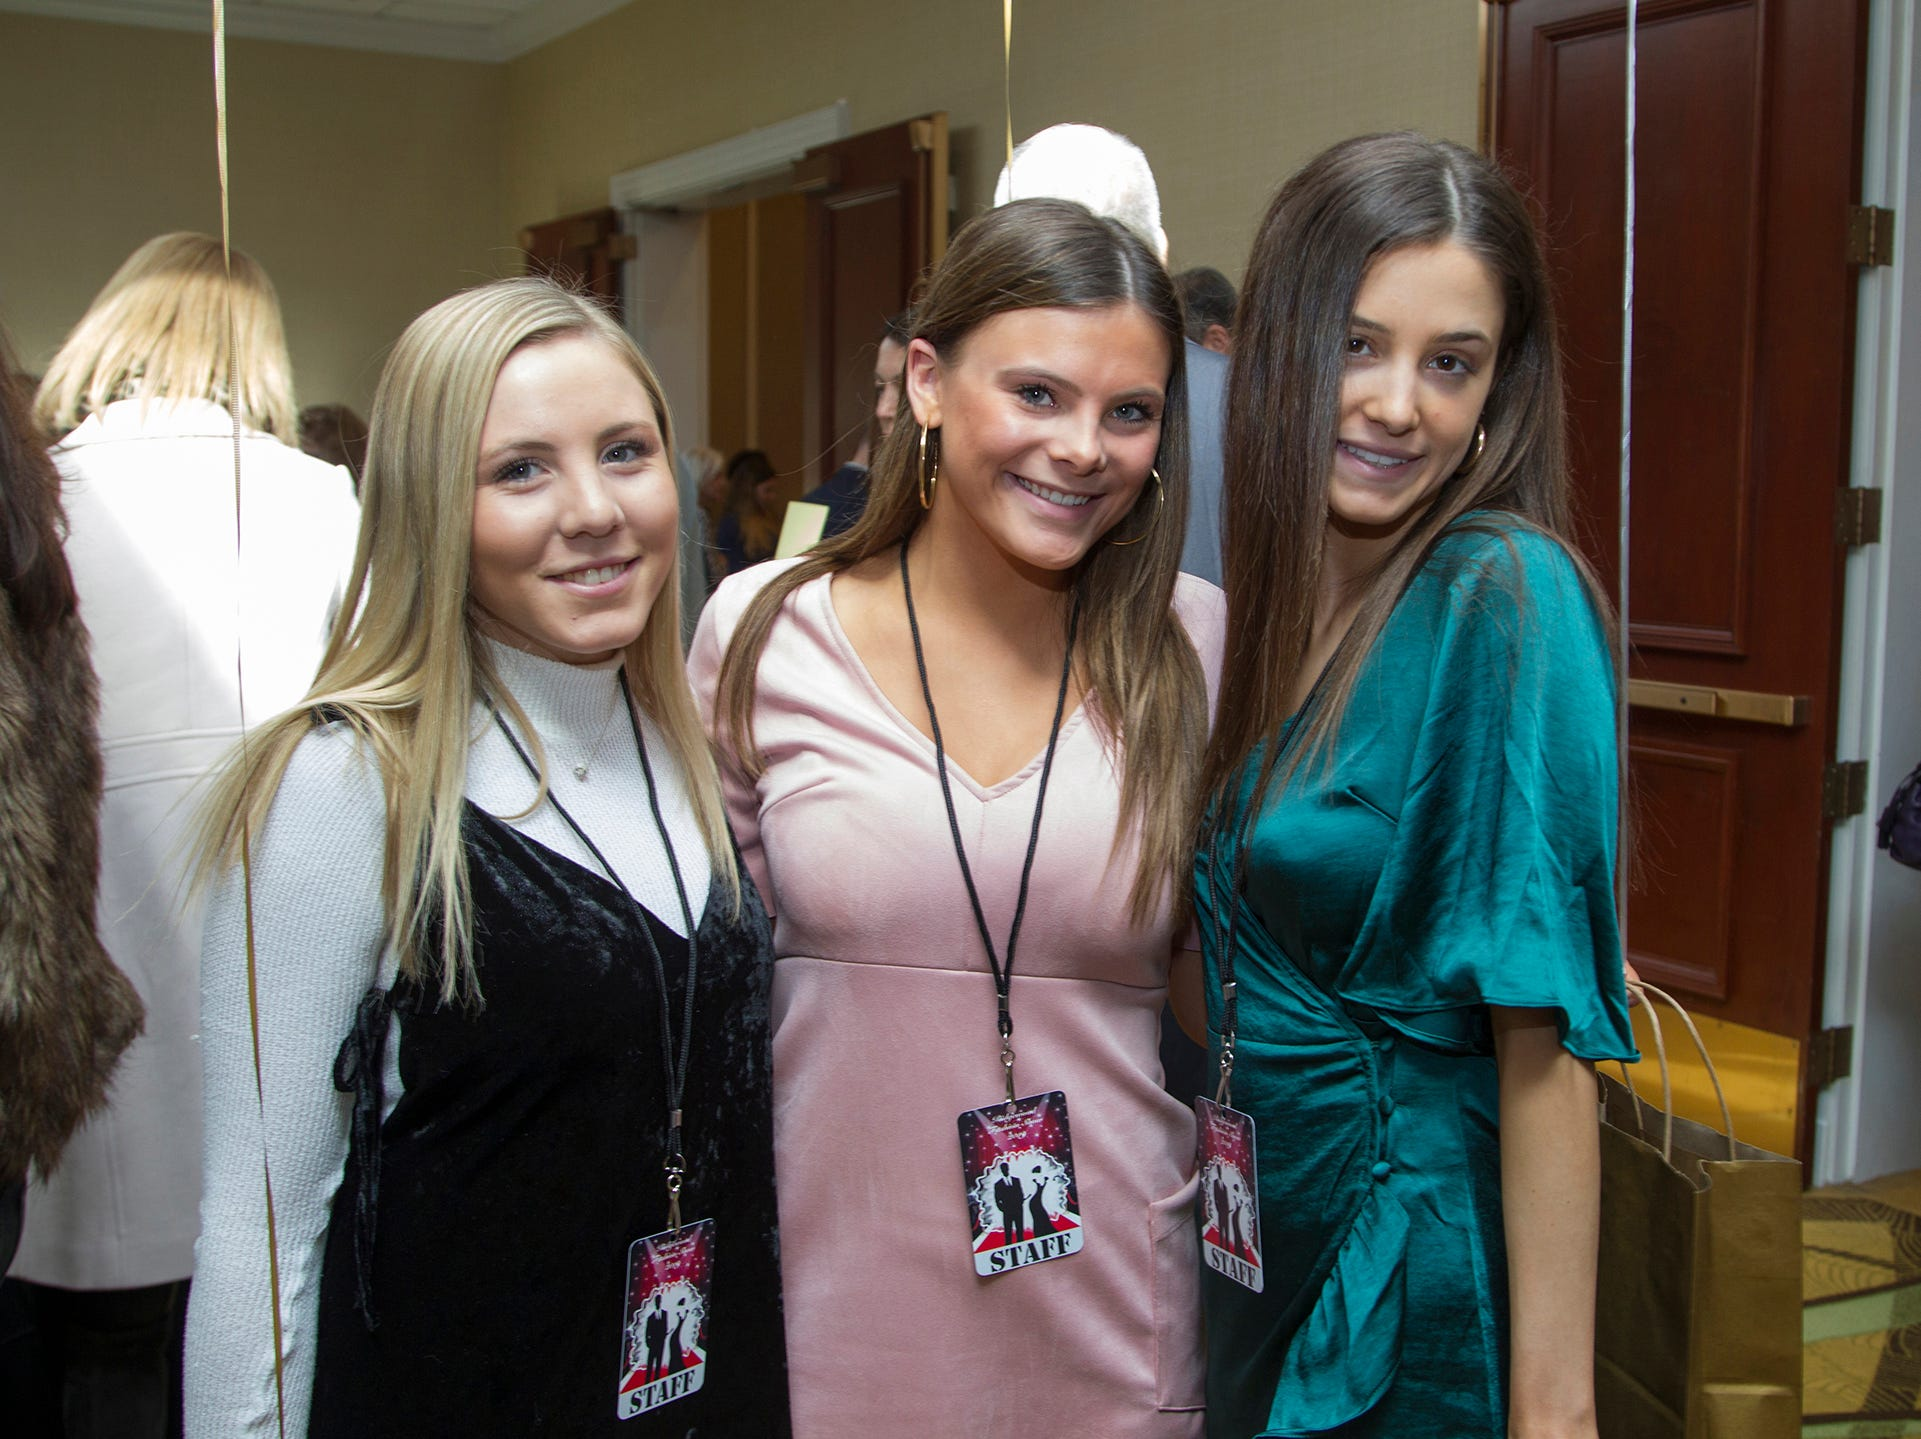 Jackie Schmidt, Ellie Schultz, Vanessa D'Angelo. Ridgewood High School seniors held their Project Graduation fashion show at the Teaneck Marriott at Glenpointe. Students walked the runway in this season's latest fashion trends. All funds raised benefited the school's Project Graduation Fund for the class of 2019. 03/03/2019